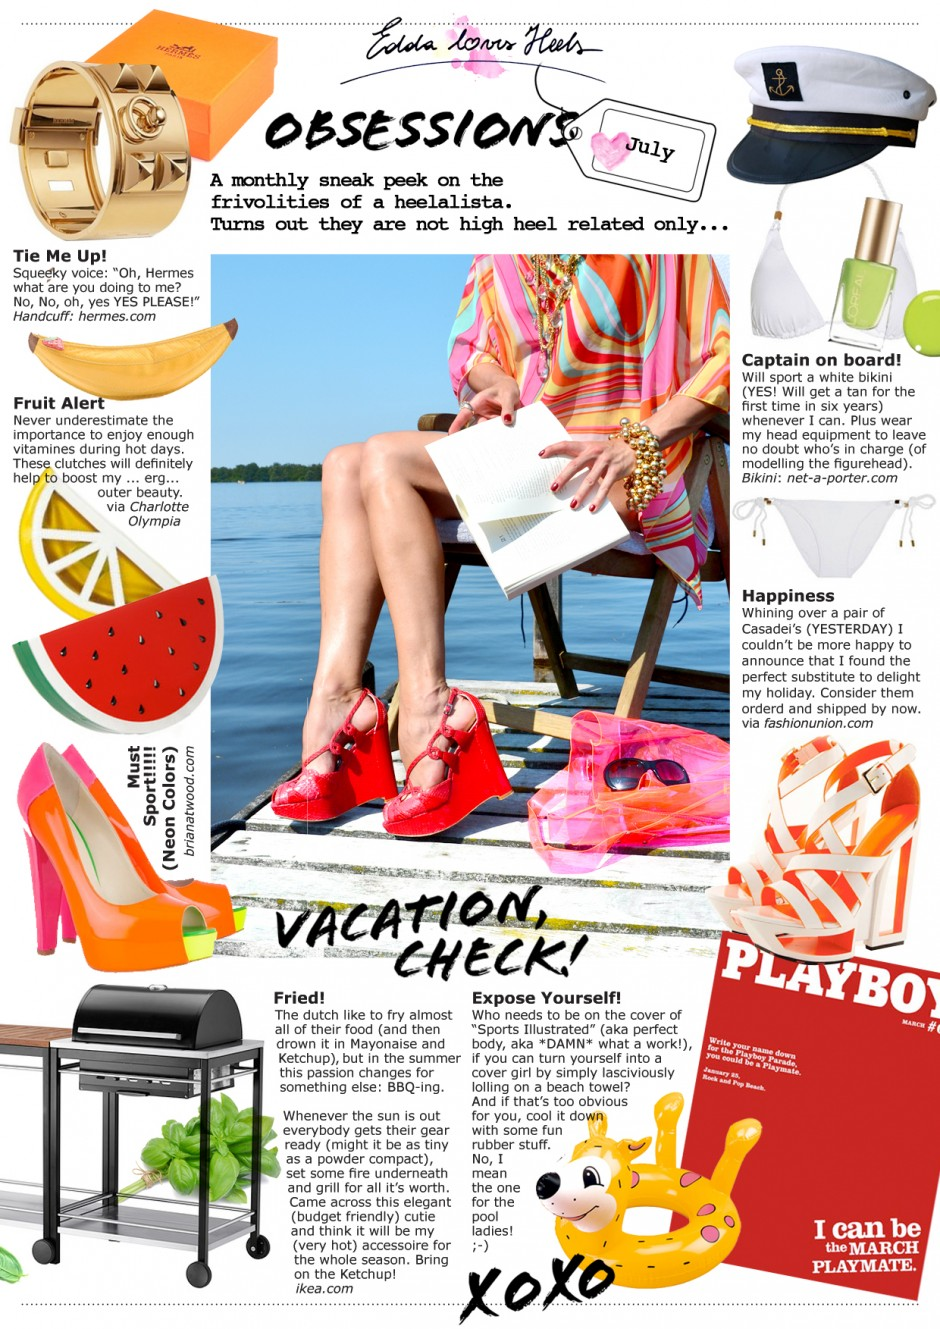 Obsessions of July